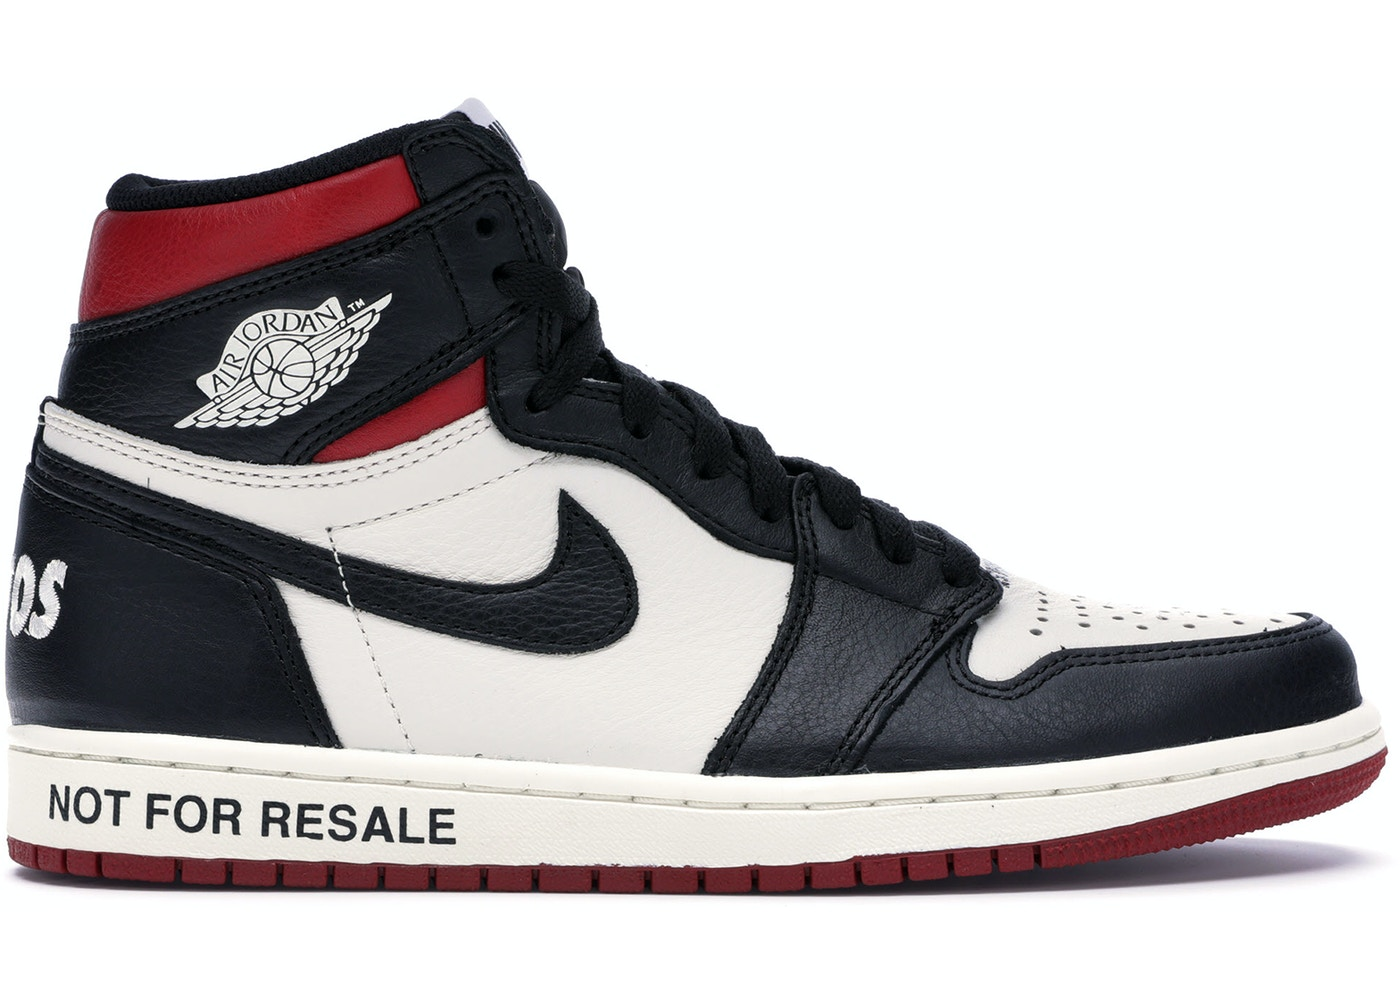 official big discount top quality Jordan 1 Retro High